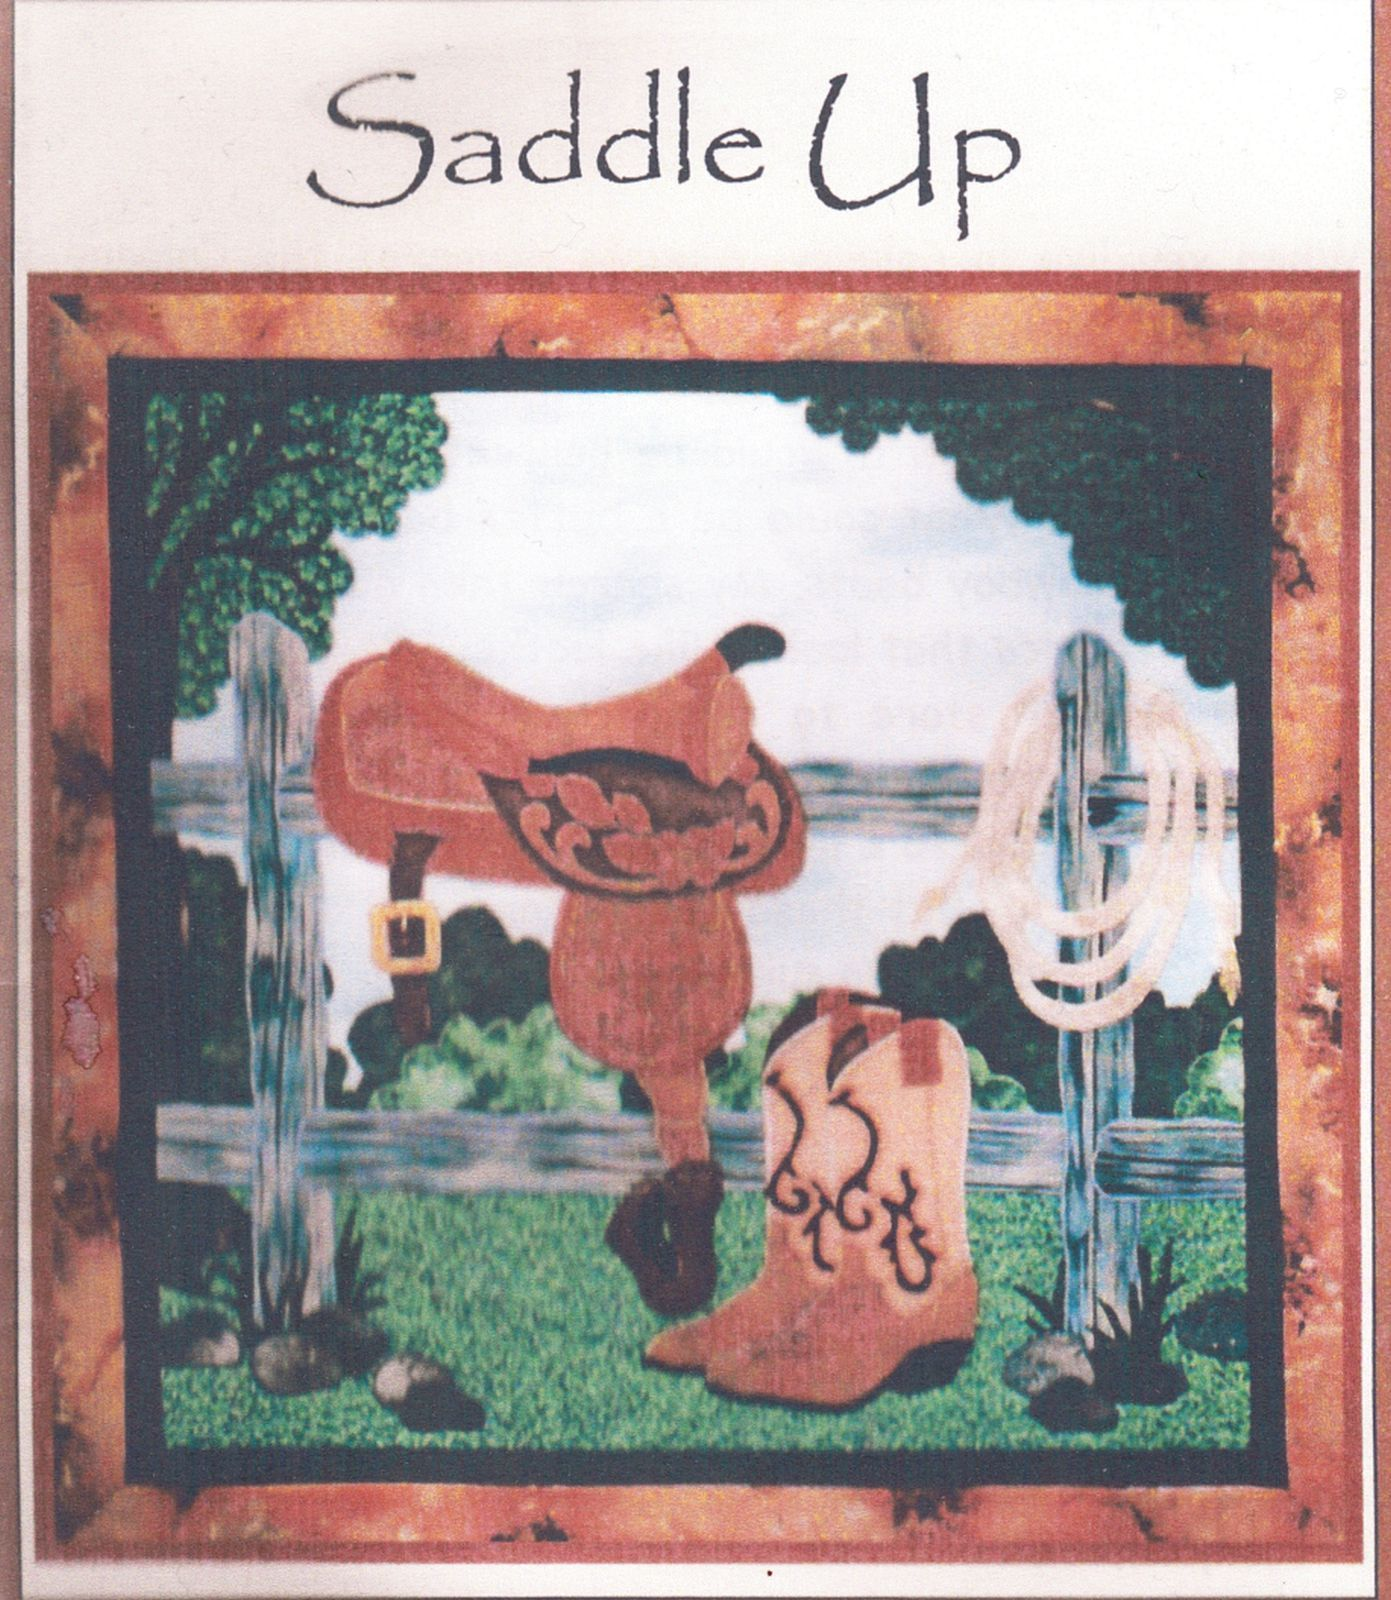 Quilt Western Saddle Up Wall Hanging Joan's Own Creation Applique Sew Pattern - $12.99